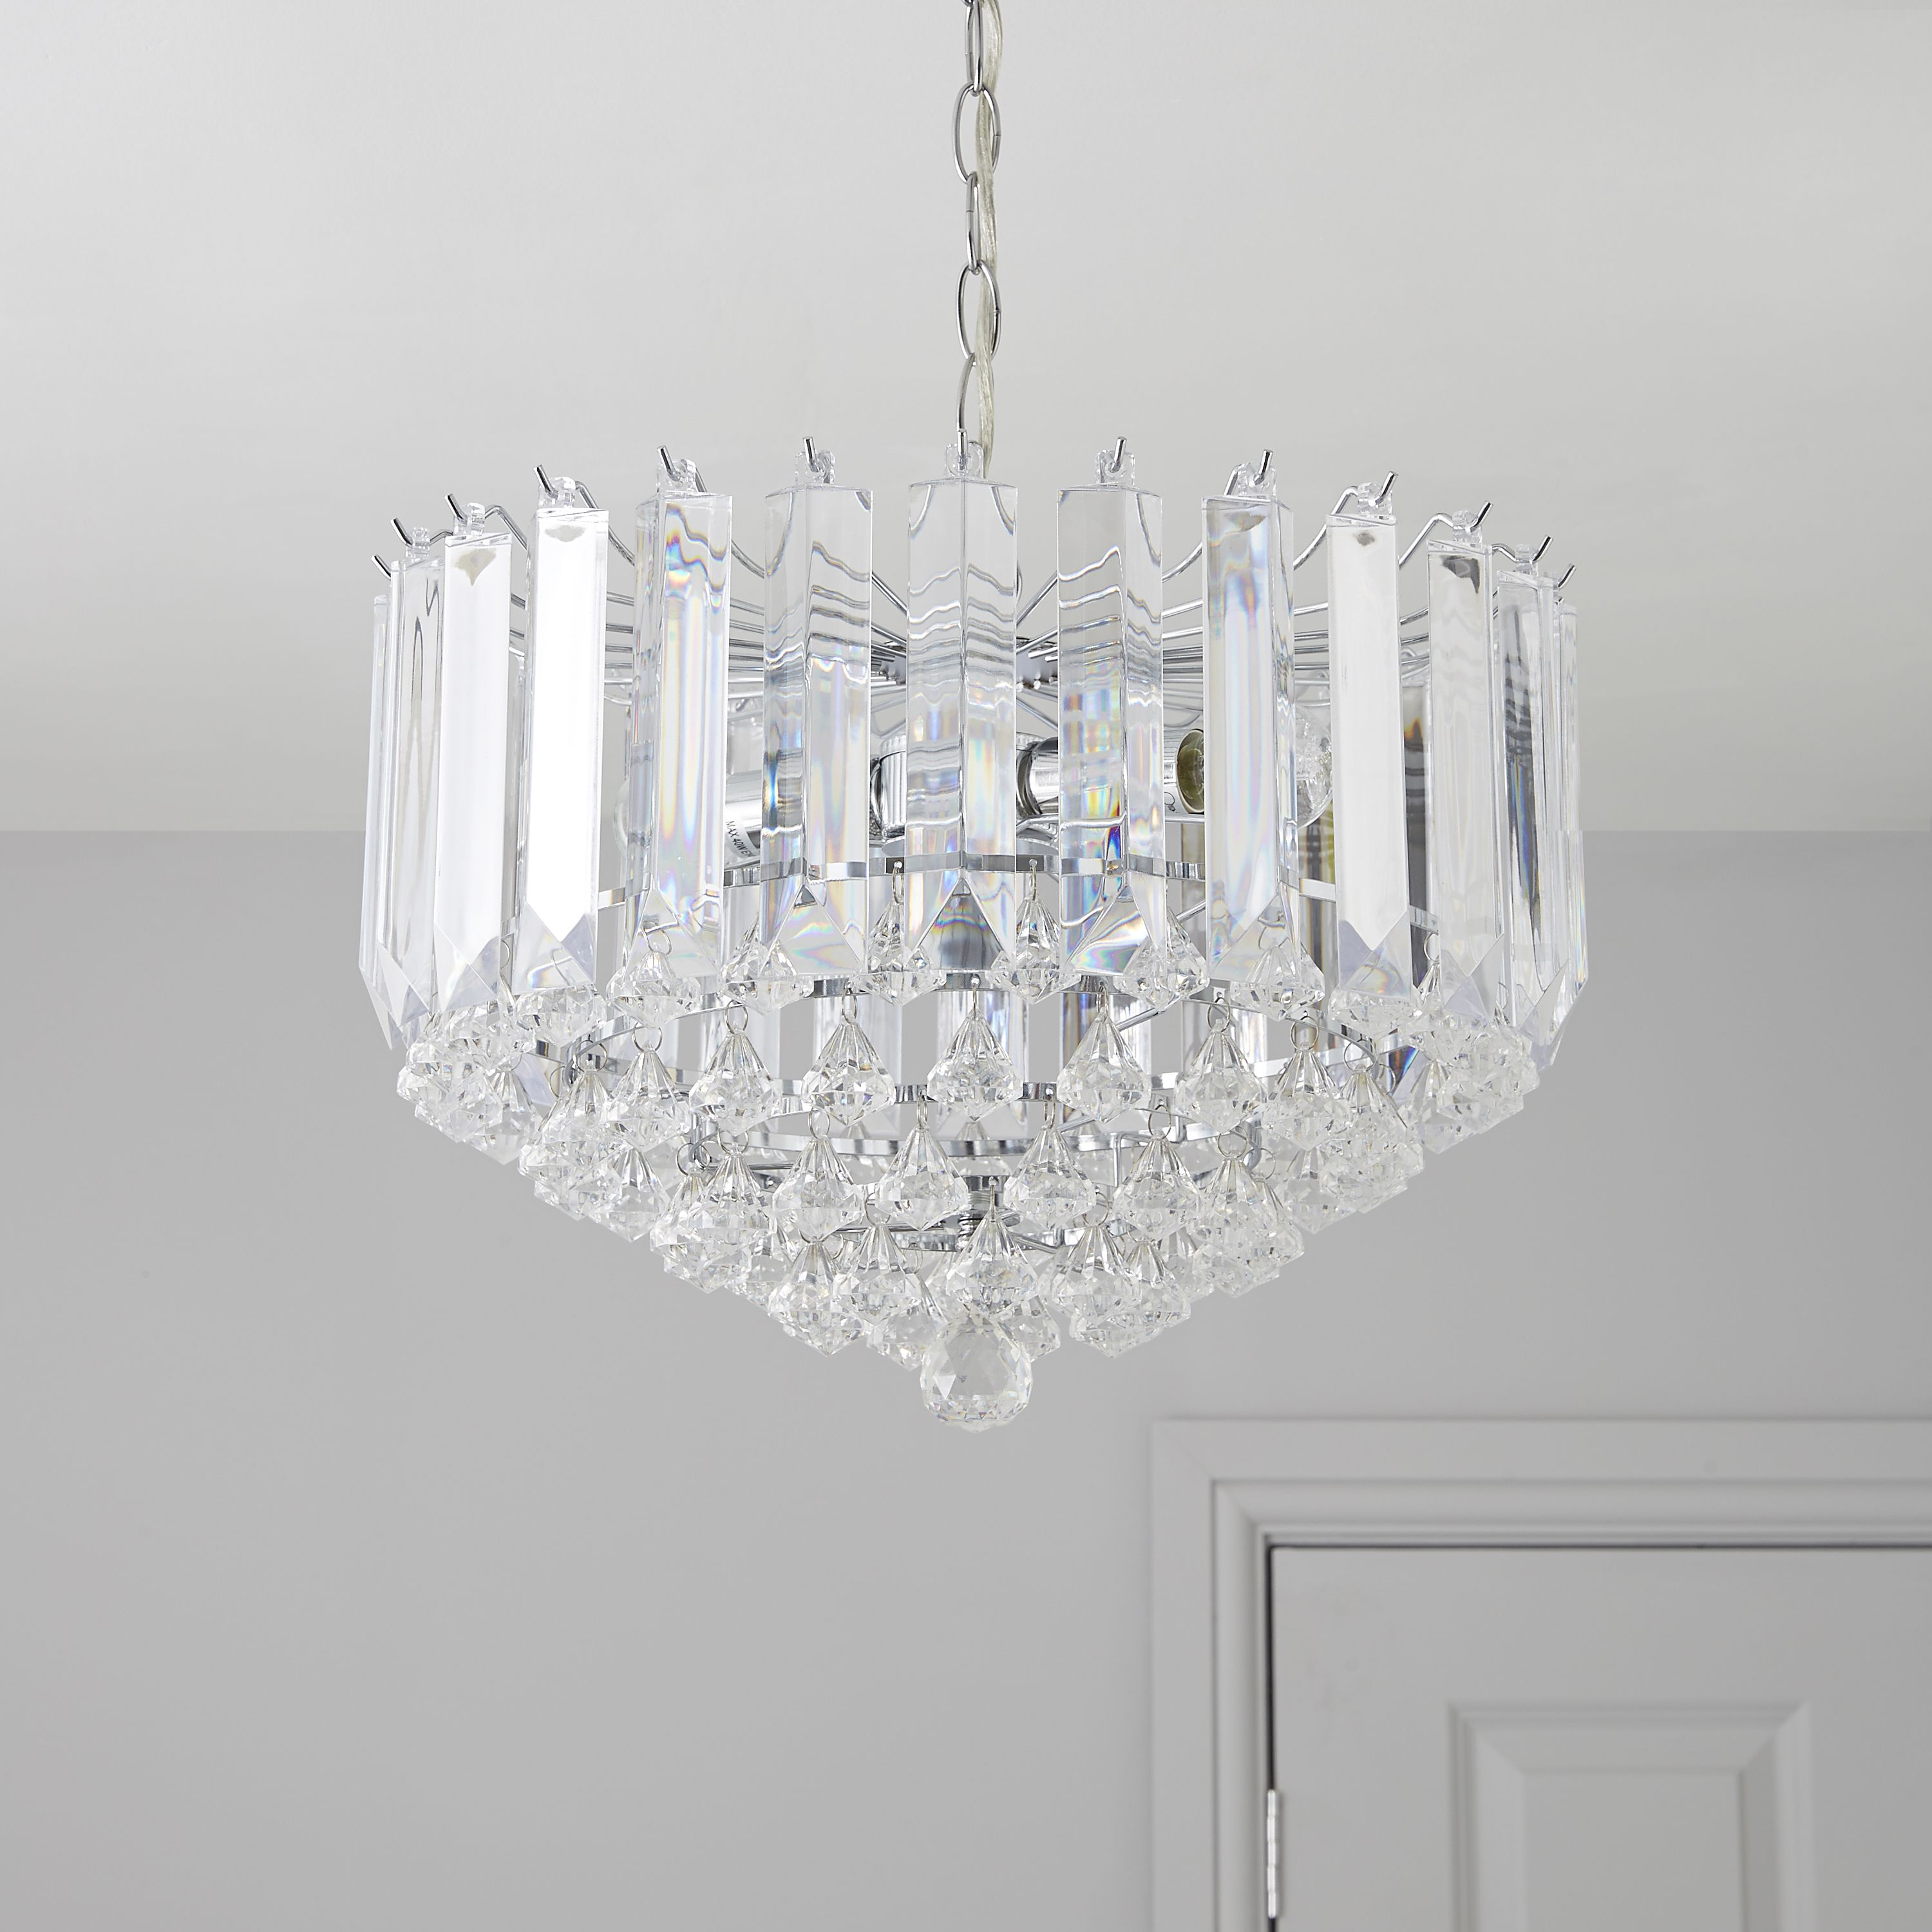 procopio faceted glass clear 2 lamp pendant ceiling light